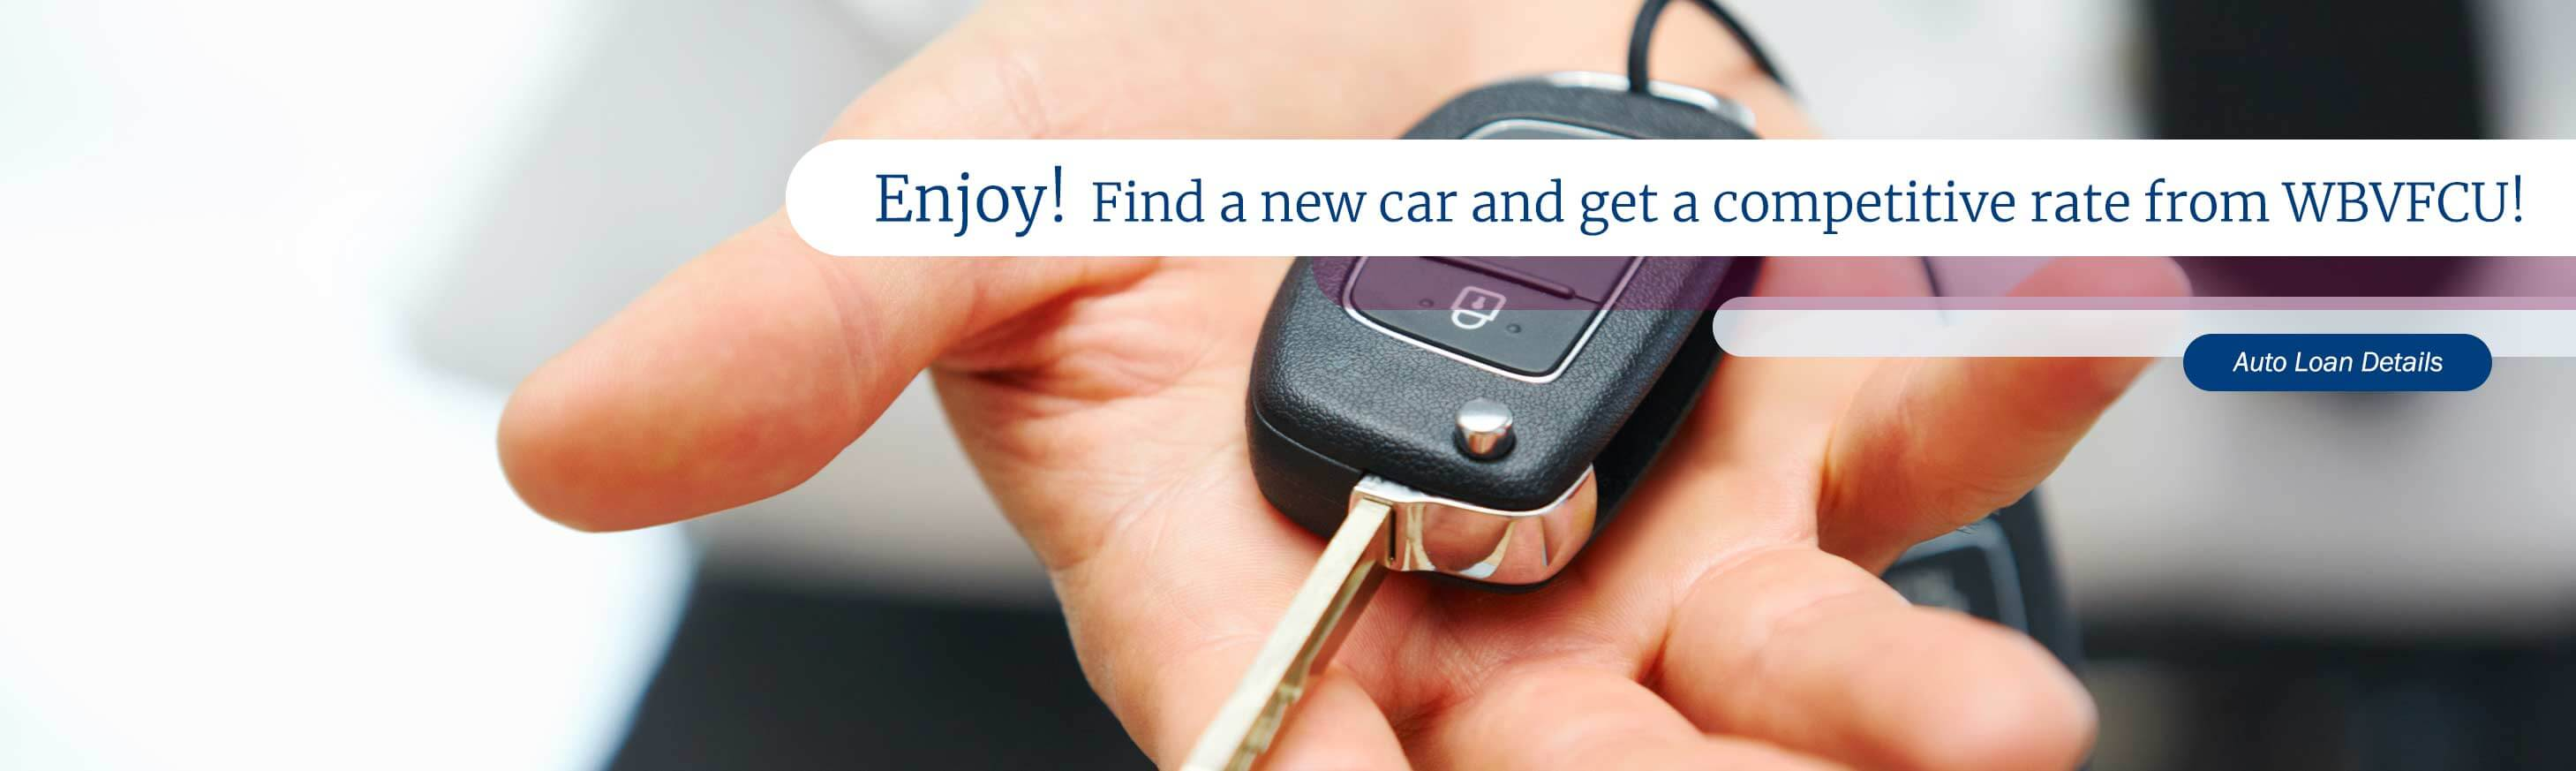 Enjoy! Find a new car and get a competitive rate from WBVFCU!